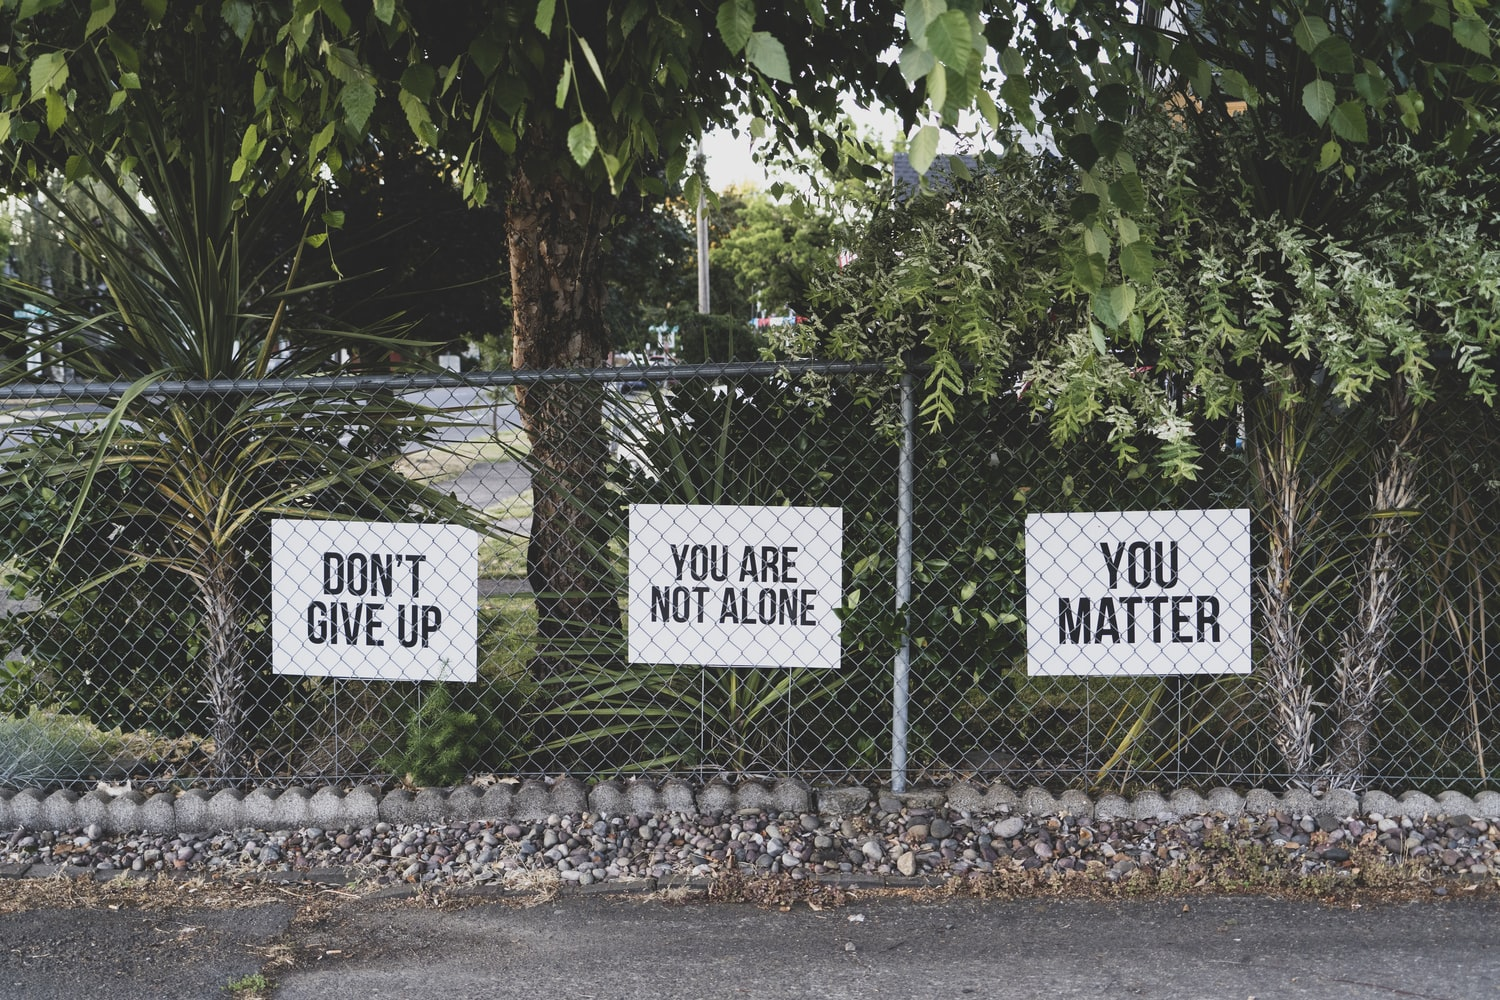 Don't give up, you are not alone, you matter, signs on a chainlink fence